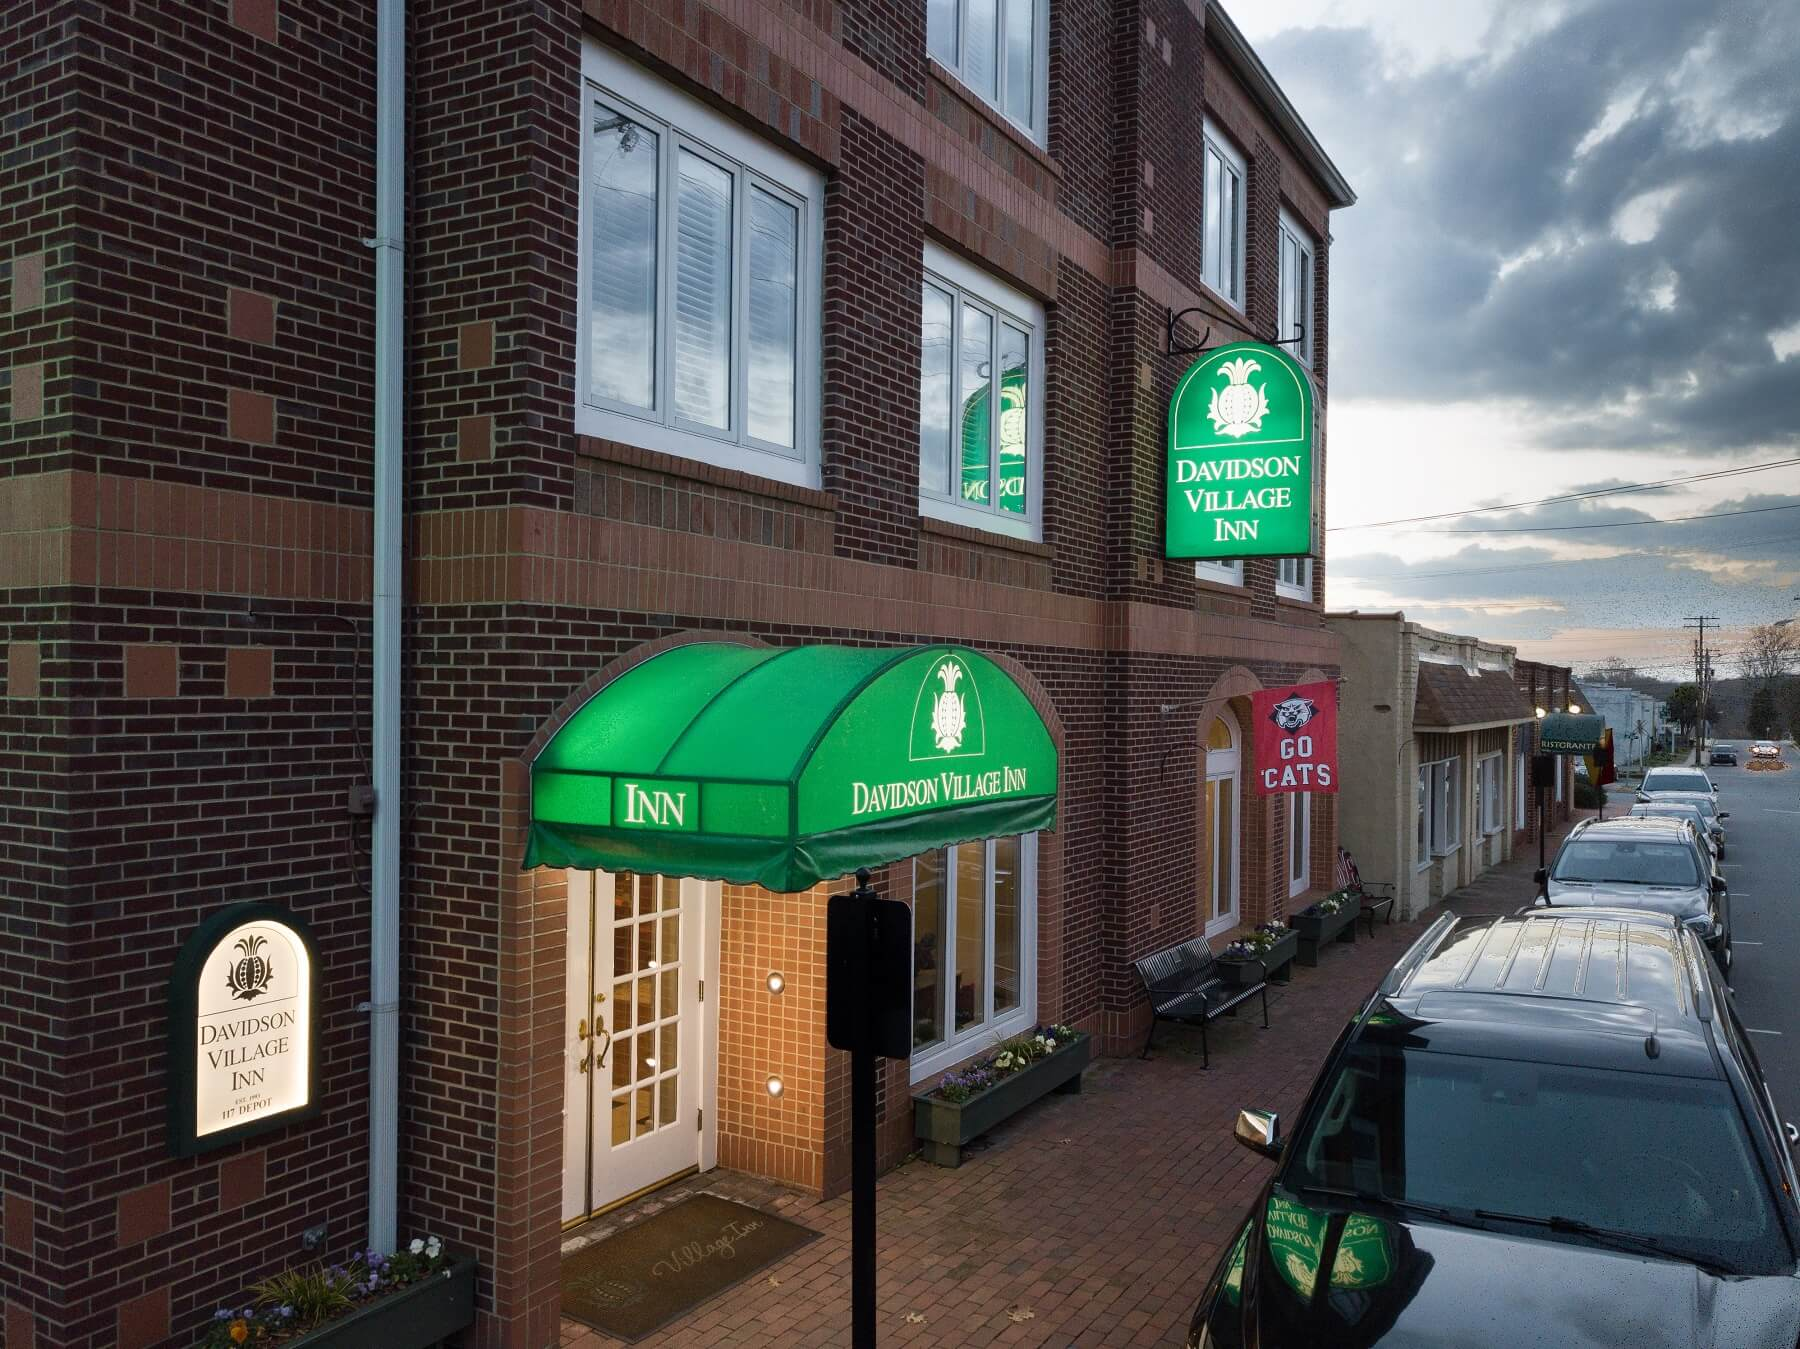 Exterior brick building of Davidson Inn with green awning over entrance